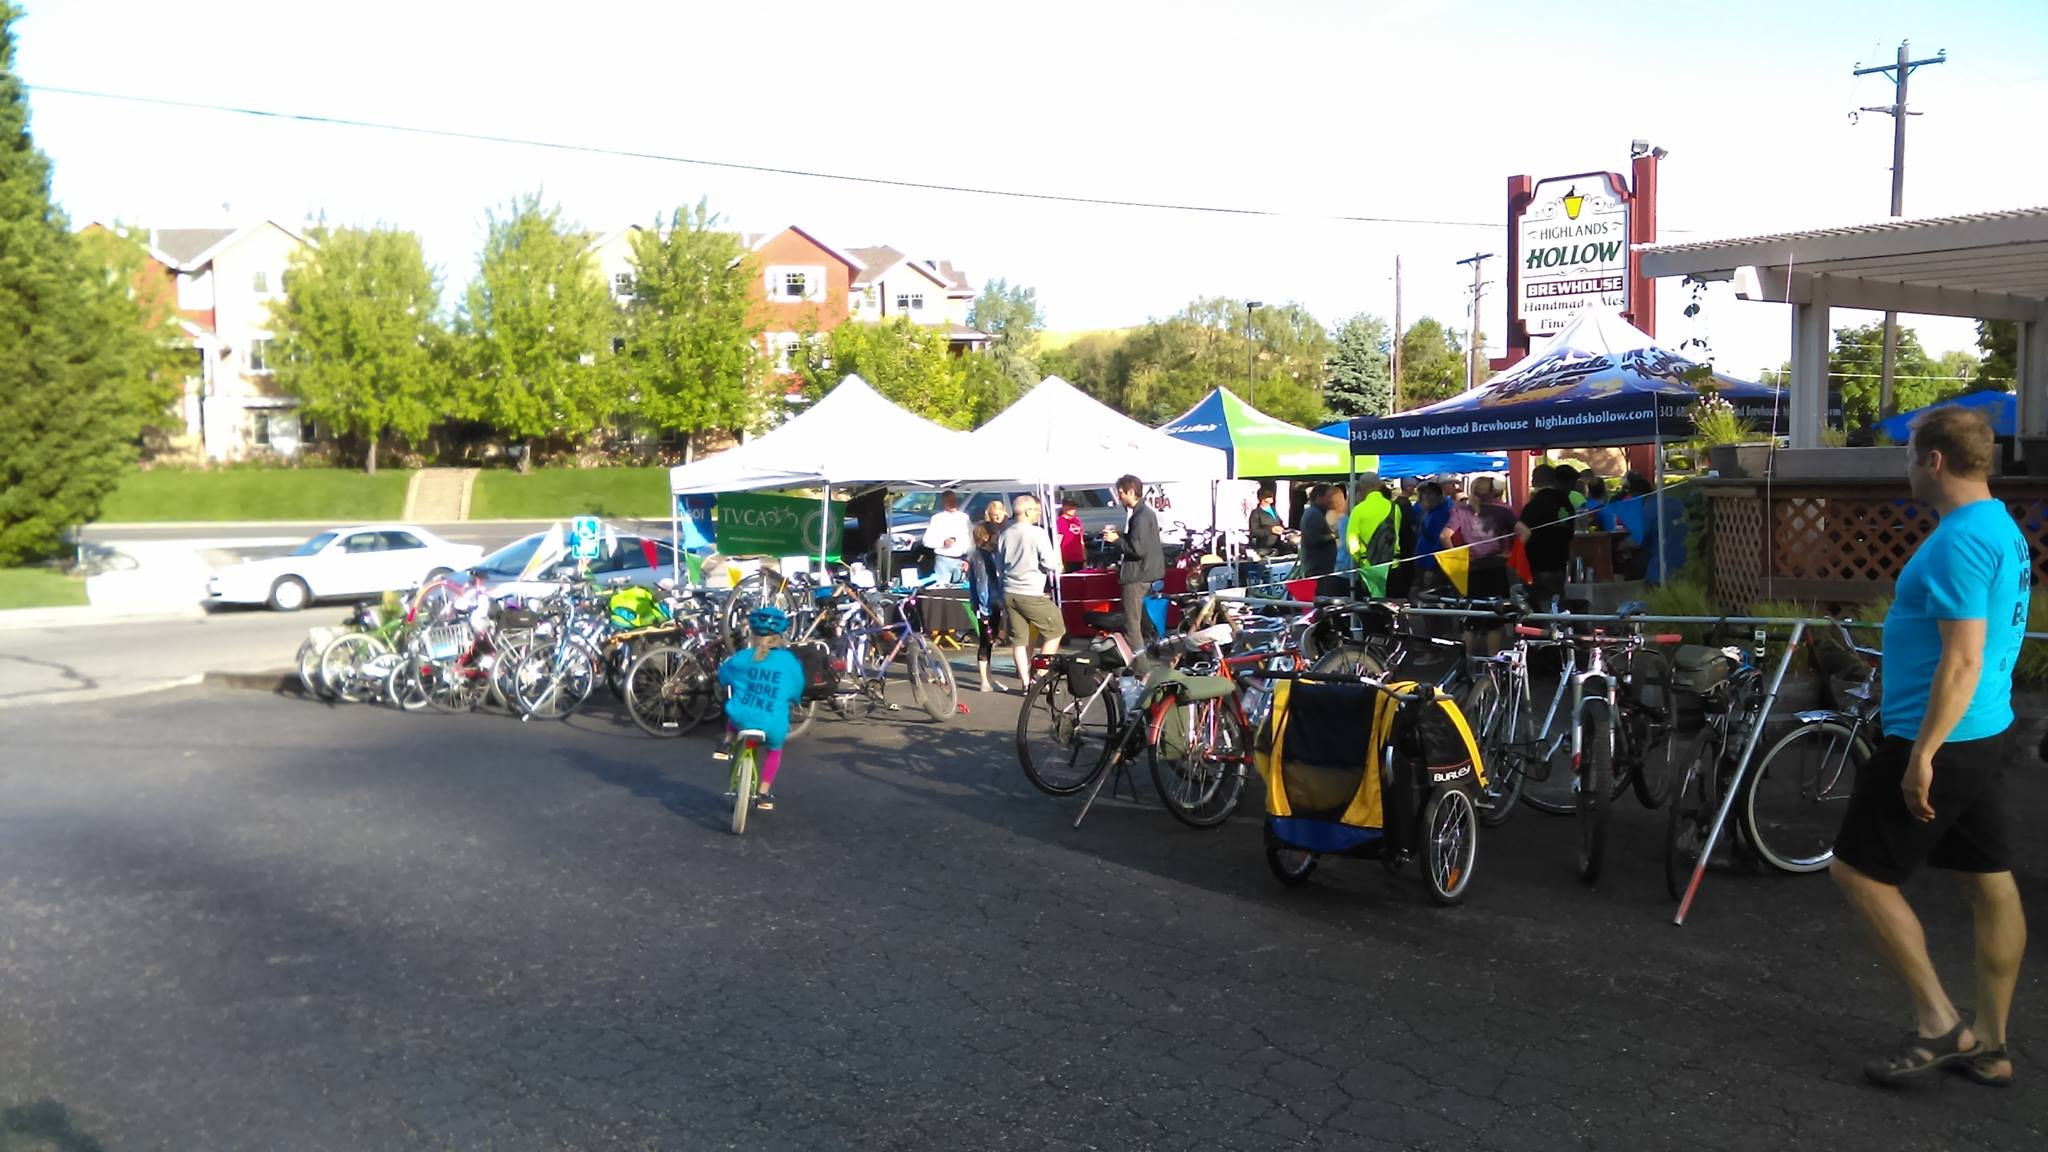 Bike Week Kick Off Party - Monday, May 13 from 5-9 PM. Join us at Highlands Hollow Brewhouse after work to officially kick off Boise Bike Week 2019. We'll have local bike groups sharing what's new with all types of biking. There will also be live music, bike parking and tune ups, so ride on over and enjoy! See the Facebook event for details.